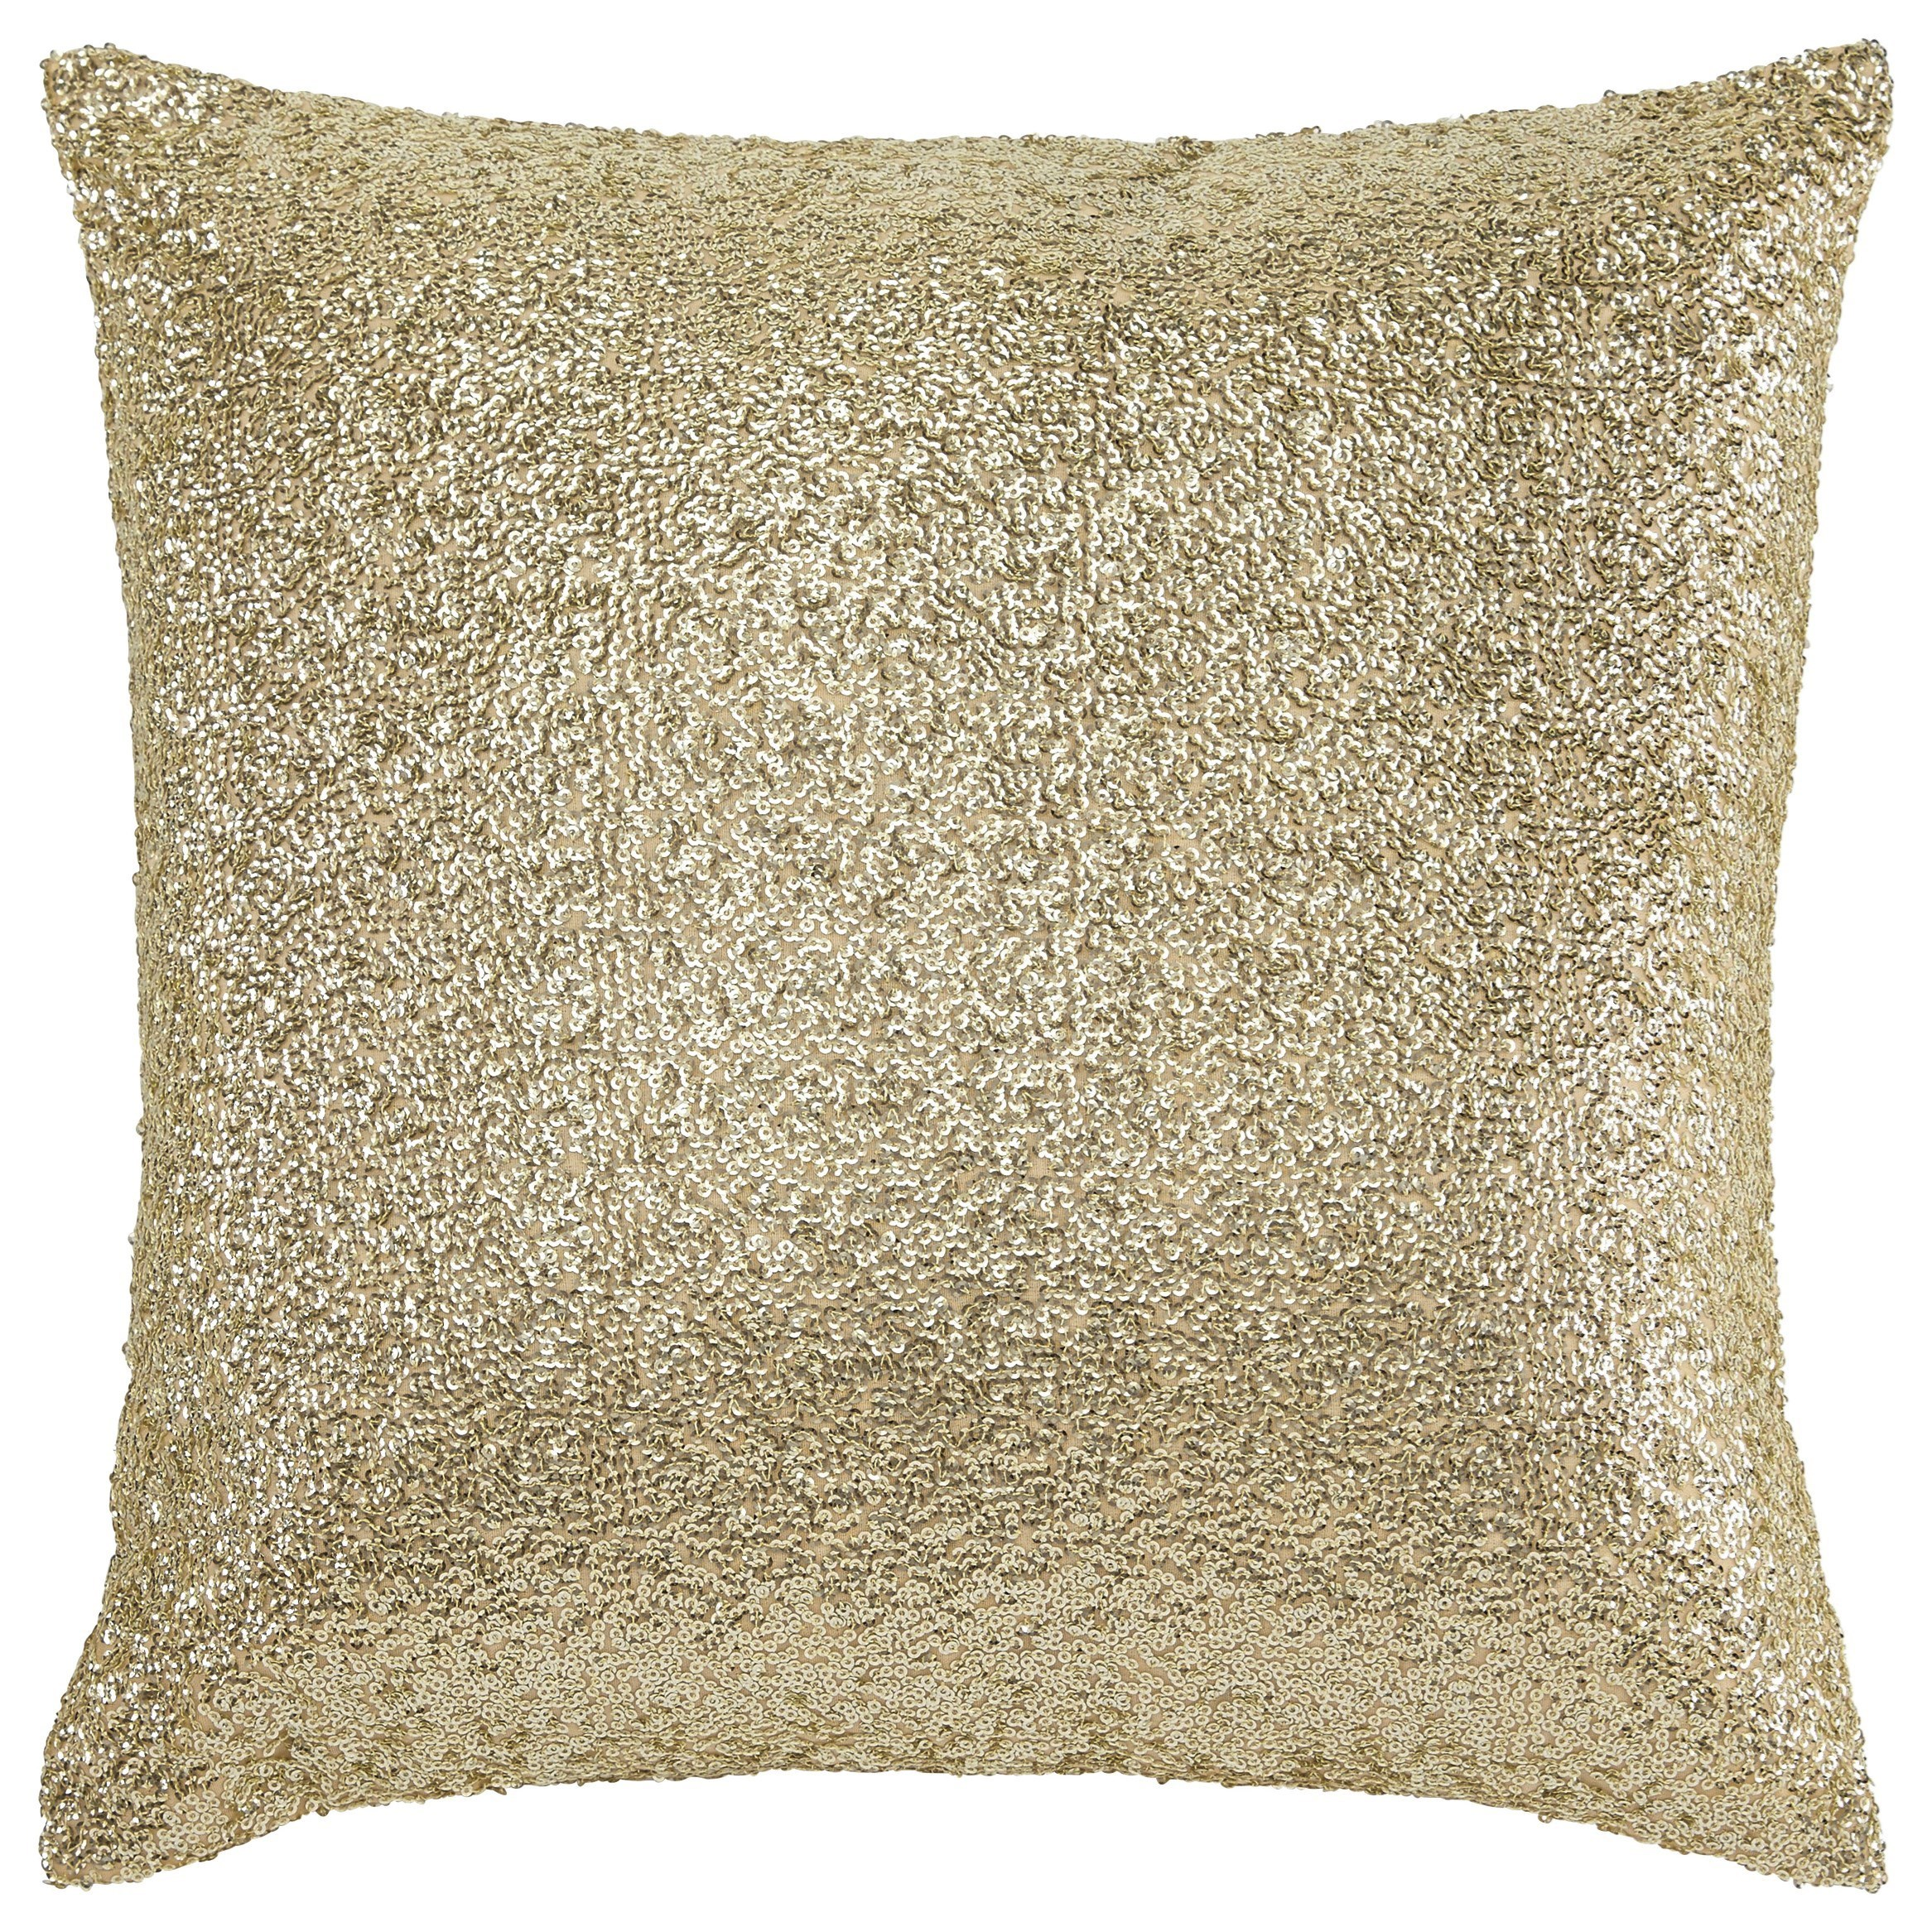 Signature Design by Ashley Pillows Renegade Gold Pillow - Item Number: A1000701P